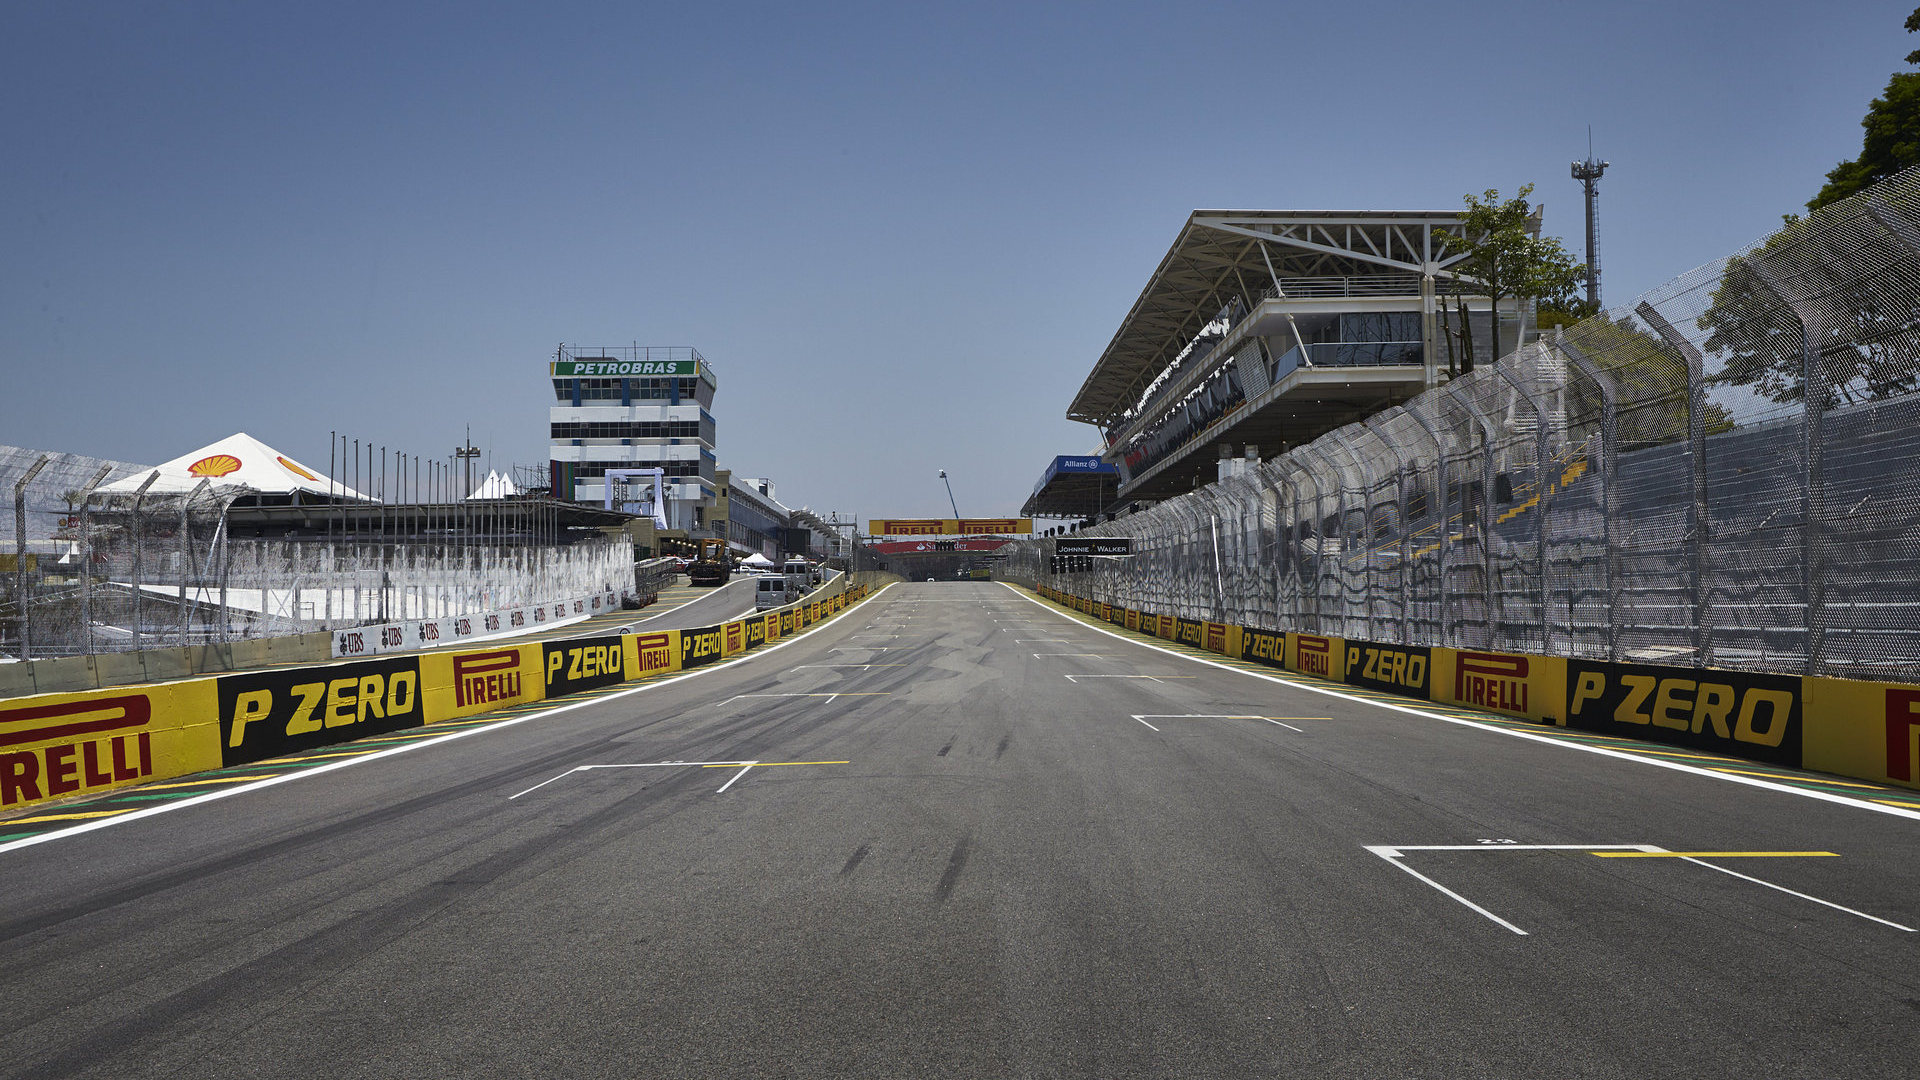 HD Wallpapers 2012 Formula 1 Grand Prix of BrazilNovember 26, 2012